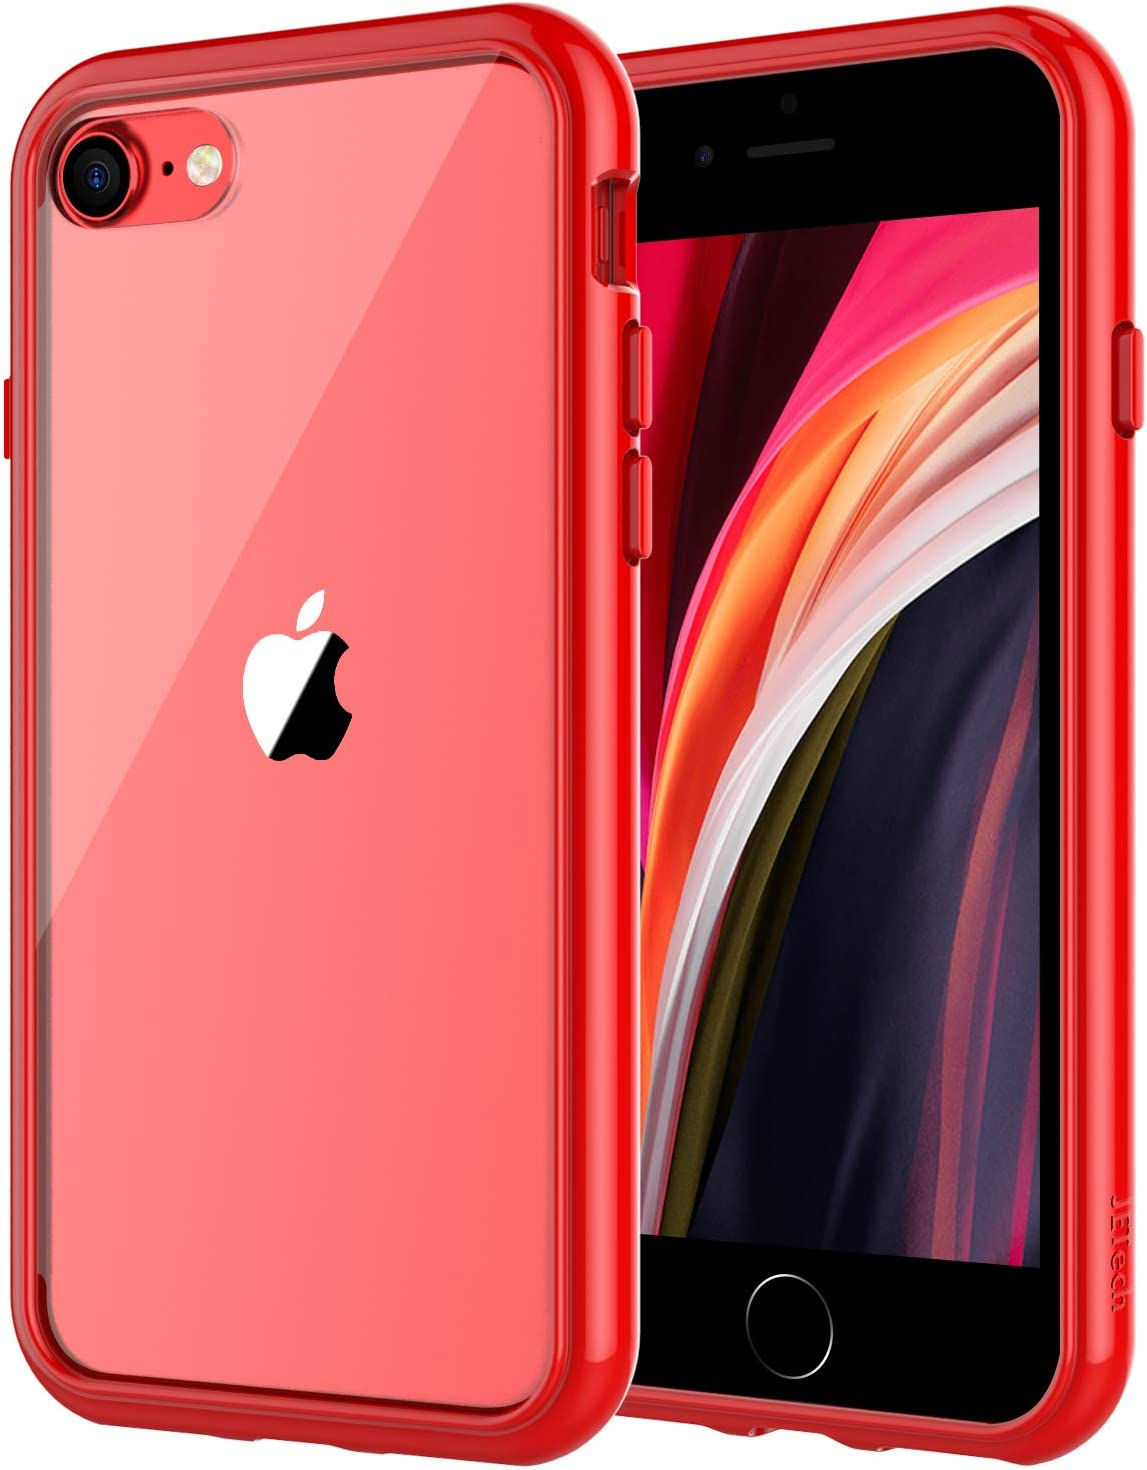 JETech Case for Apple iPhone SE 2nd Generation, iPhone 8 and iPhone 7, 4.7-Inch, Shockproof Bumper Cover, Anti-Scratch Clear Back, Red